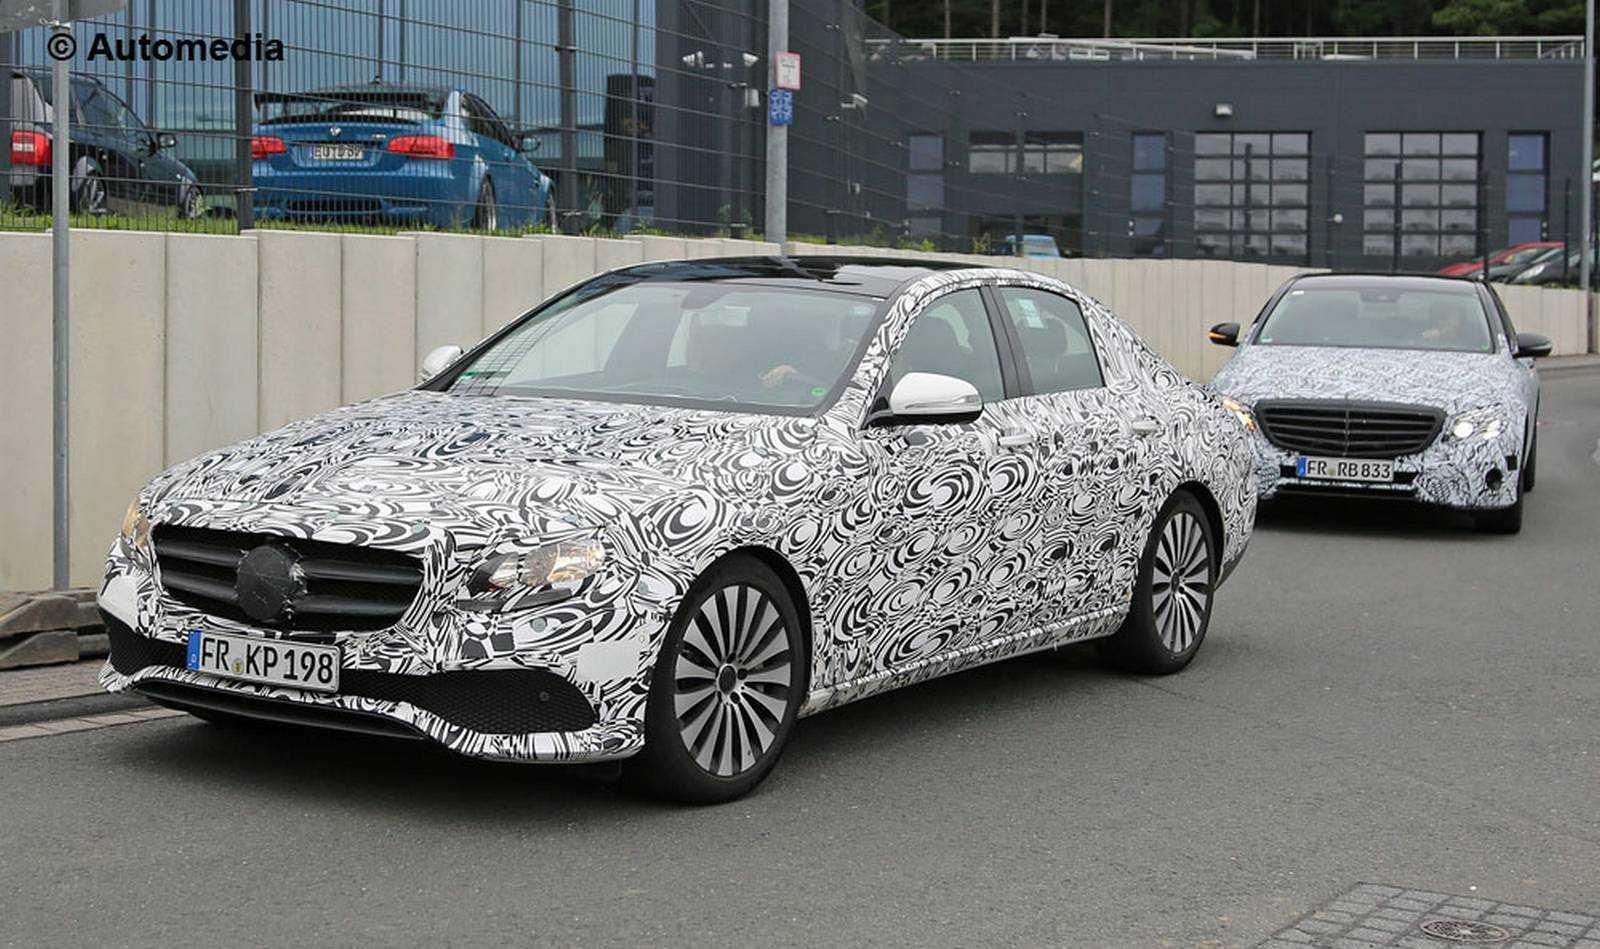 2016 Mercedes Benz E-Class Gets New Interiors Inspired by Their S-Class